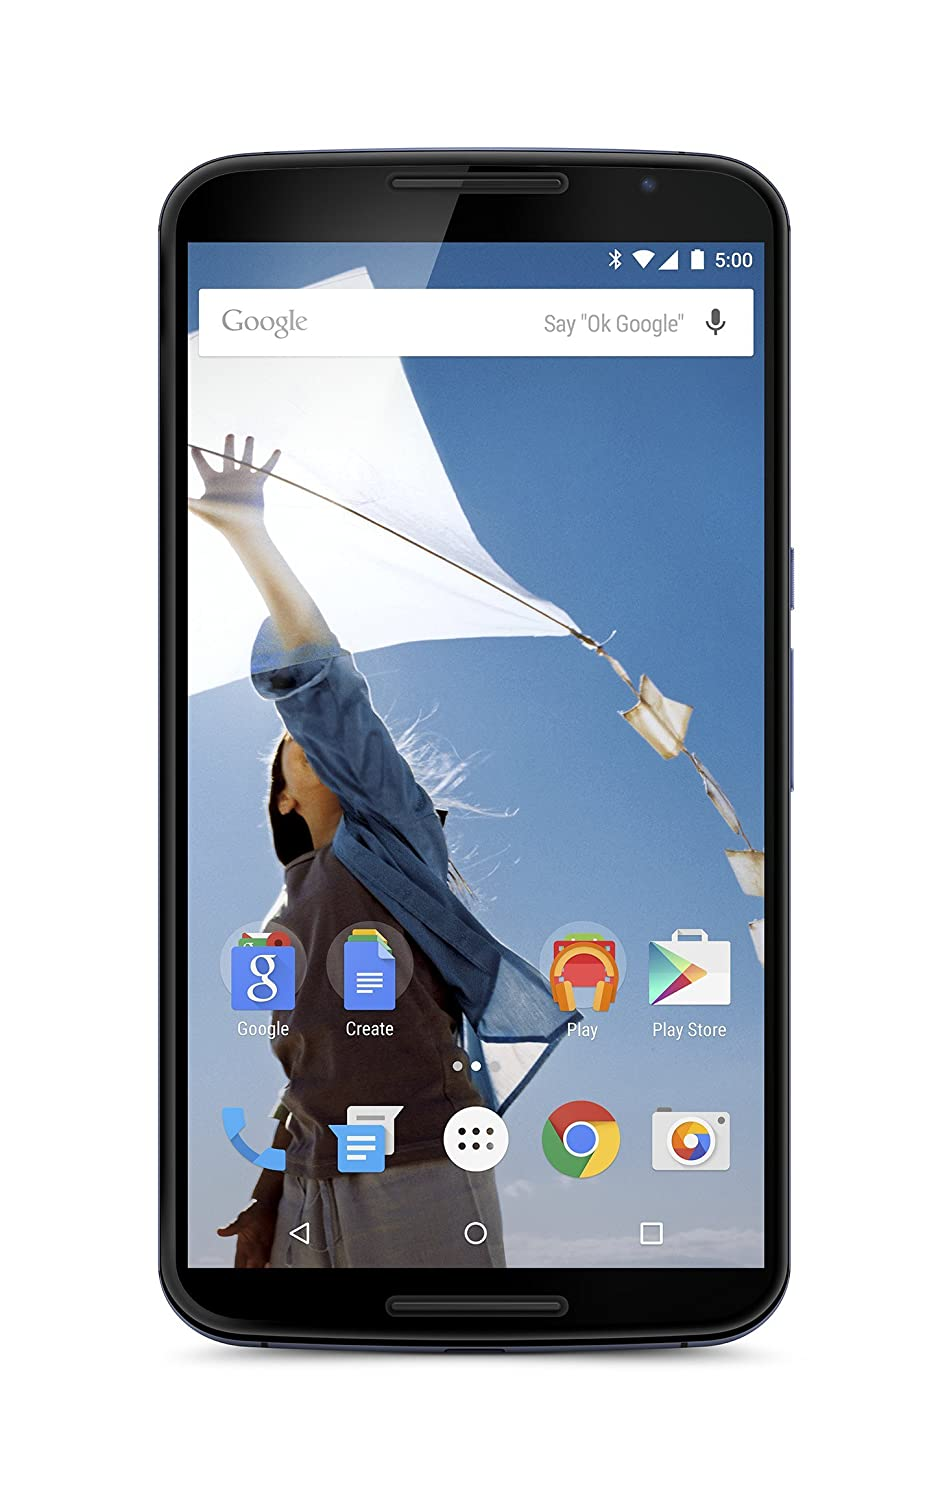 Motorola Nexus 6 Unlocked Cellphone, 32GB, Midnight Blue (U.S. Warranty) (Discontinued by Manufacturer)